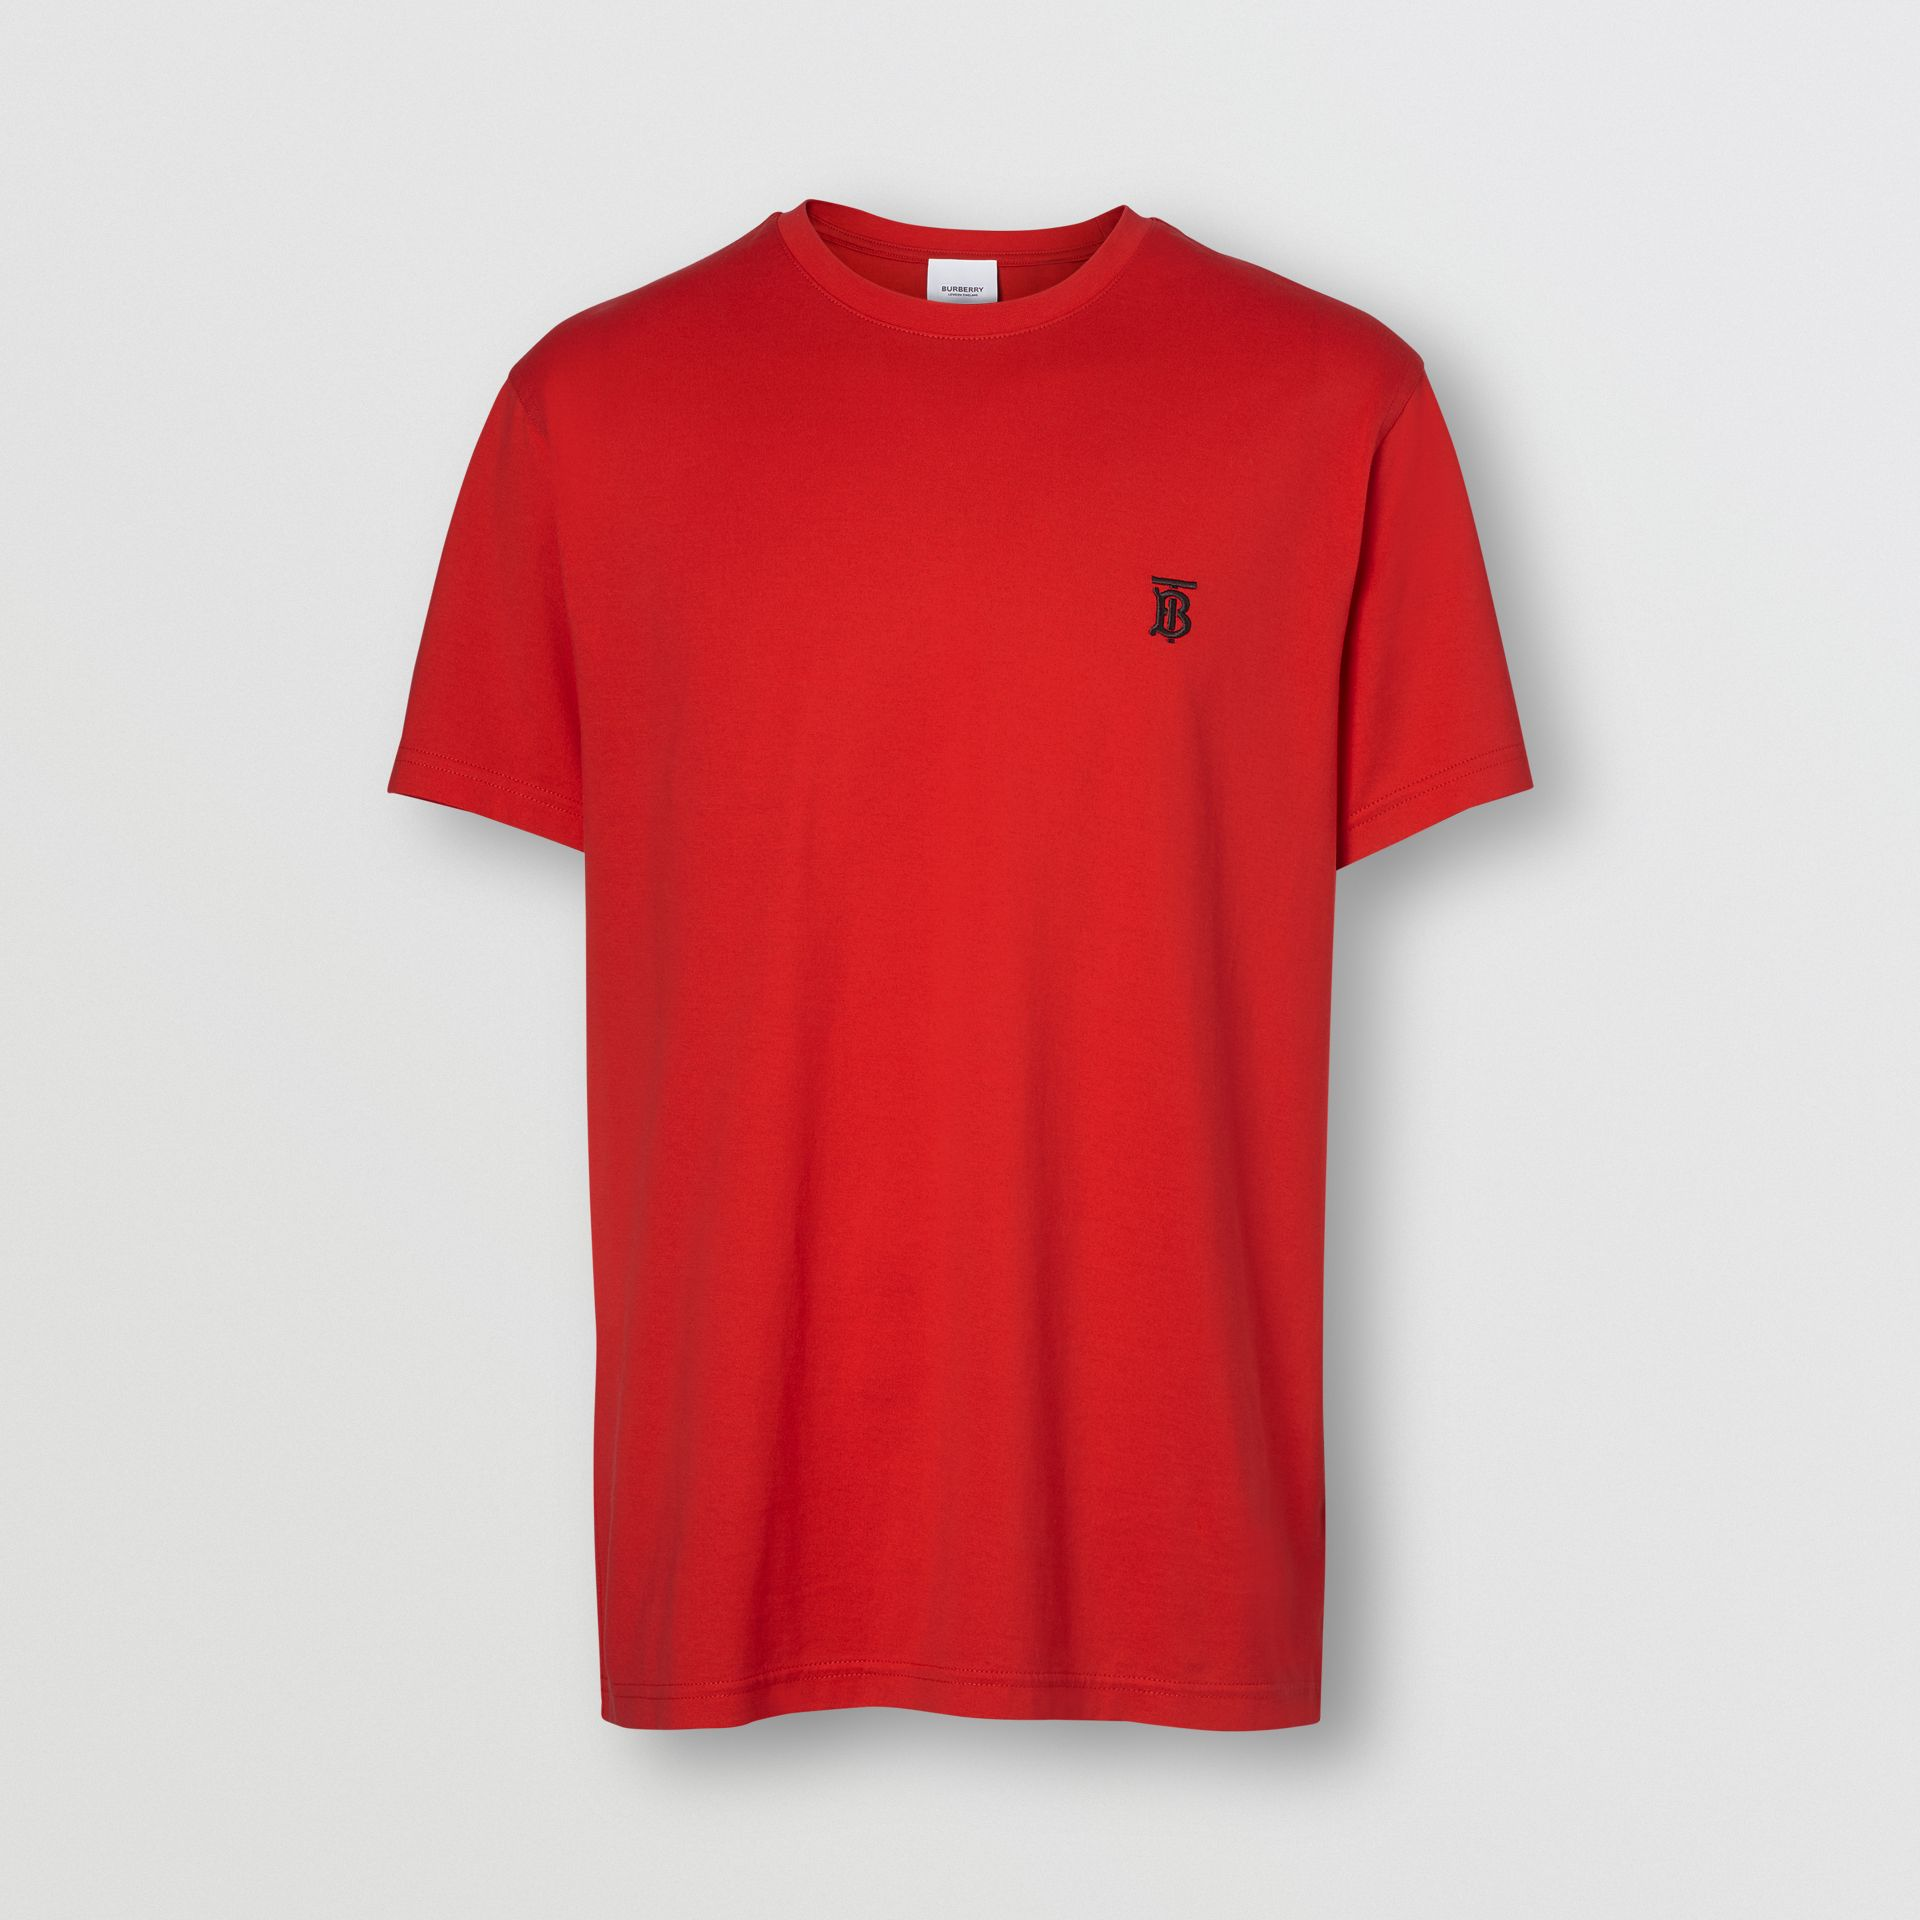 Monogram Motif Cotton T-shirt in Bright Red - Men | Burberry - gallery image 3